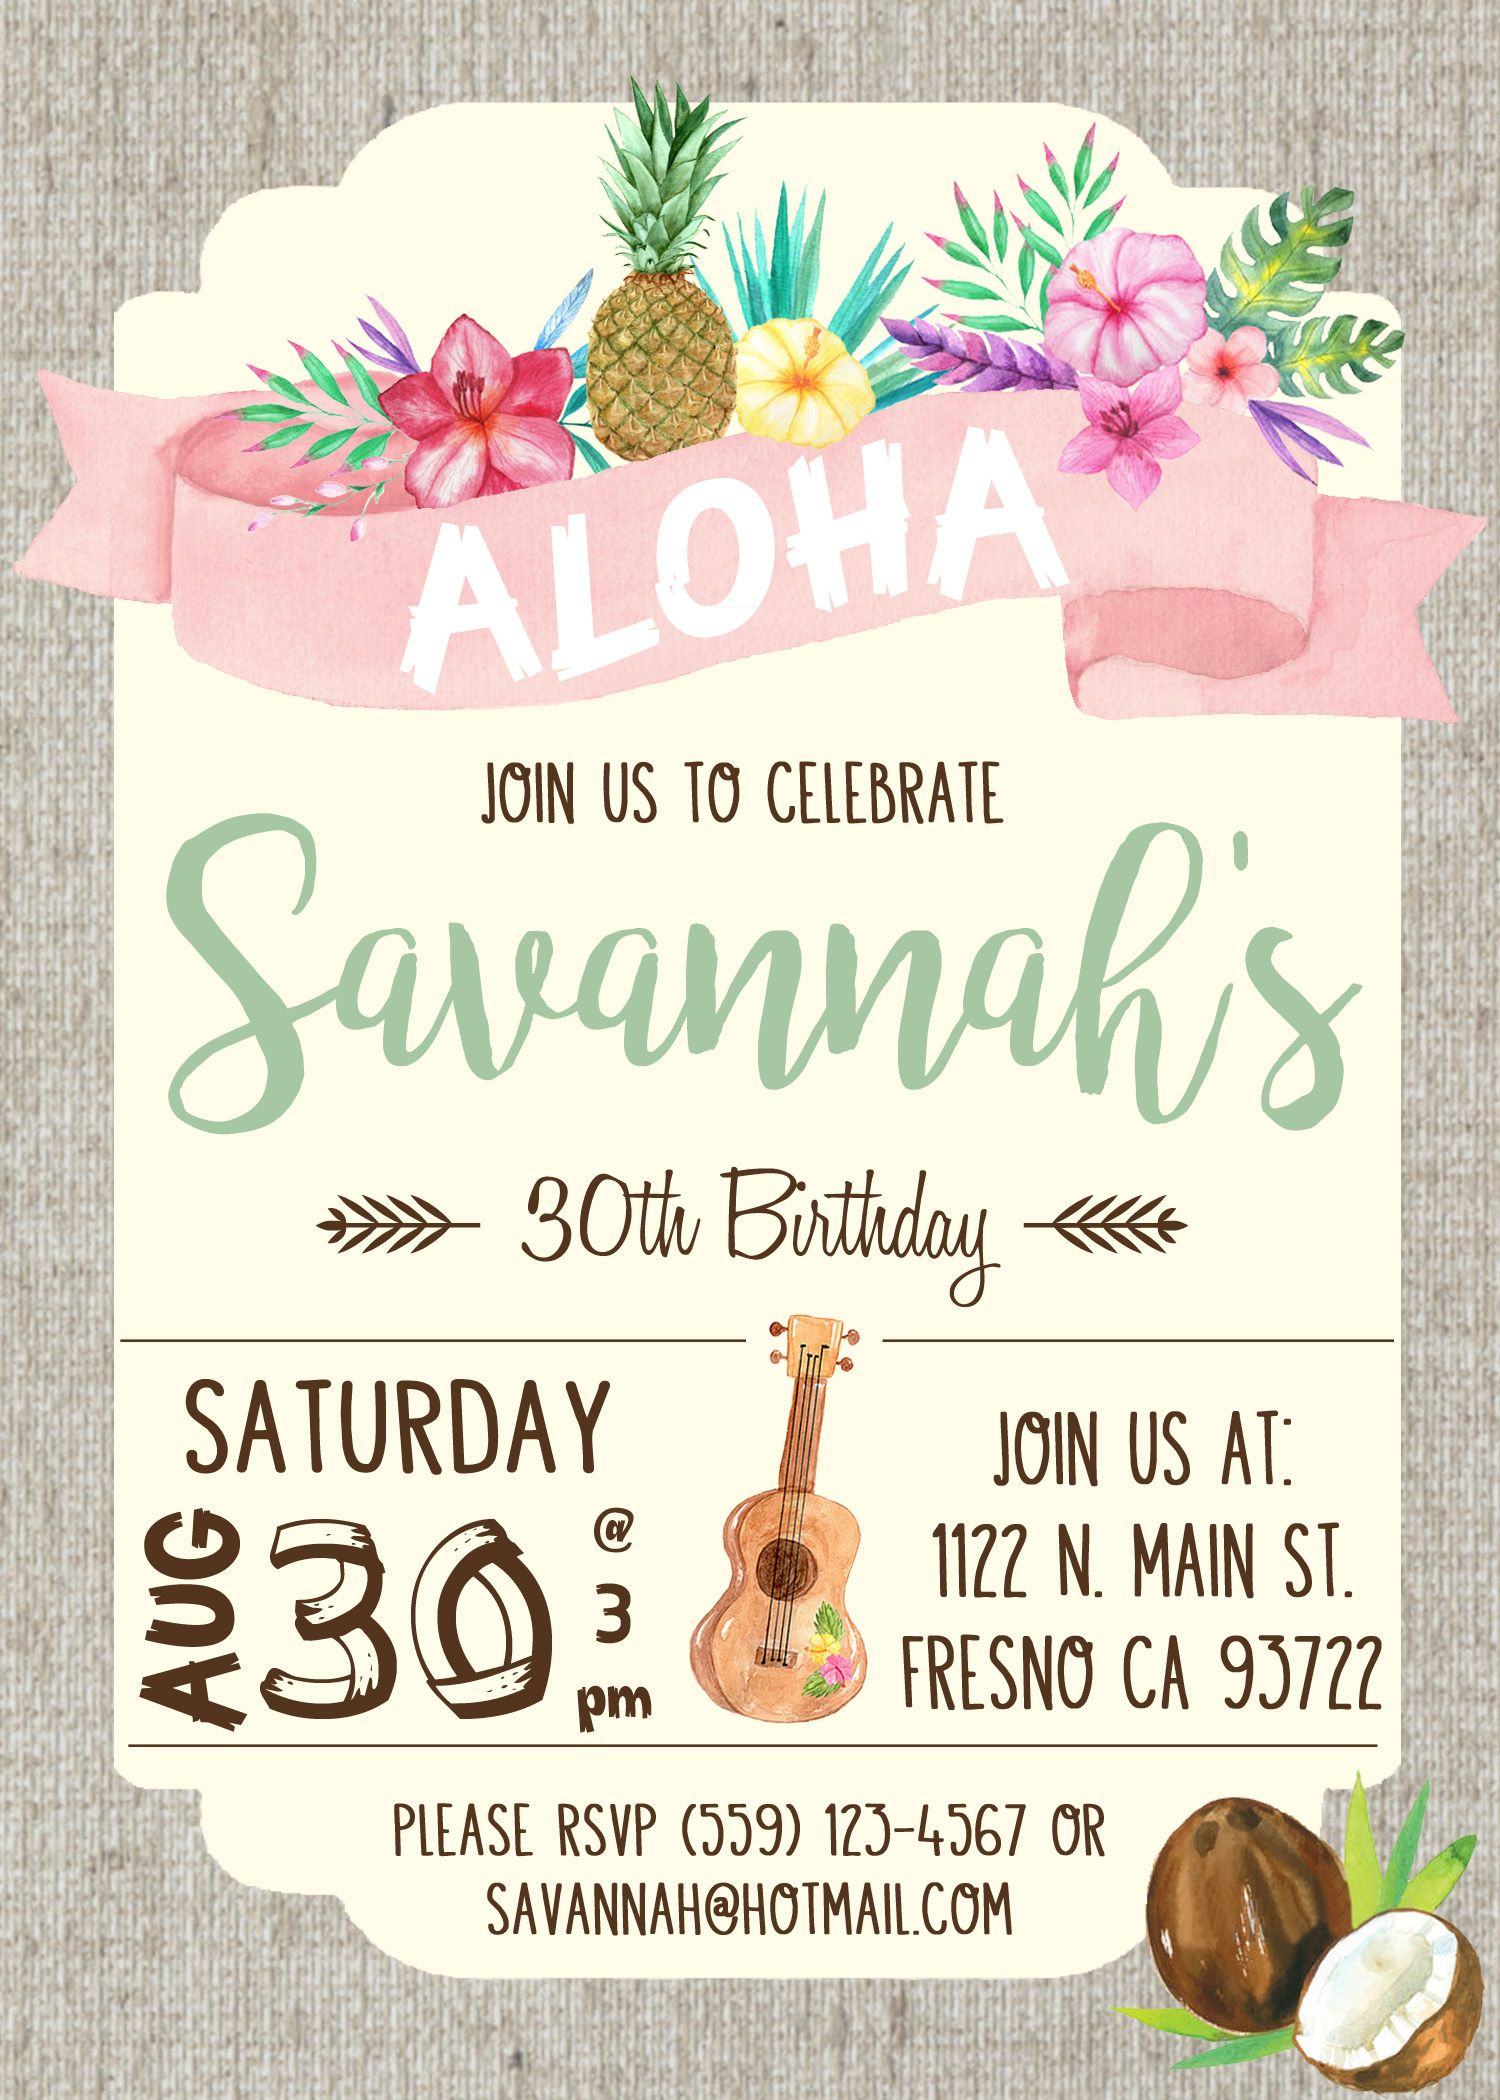 Hawaiian luau birthday party invitation invite watercolor flowers hawaiian luau birthday party invitation invite watercolor flowers shabby chic ukulele pineapple coconut aloha stopboris